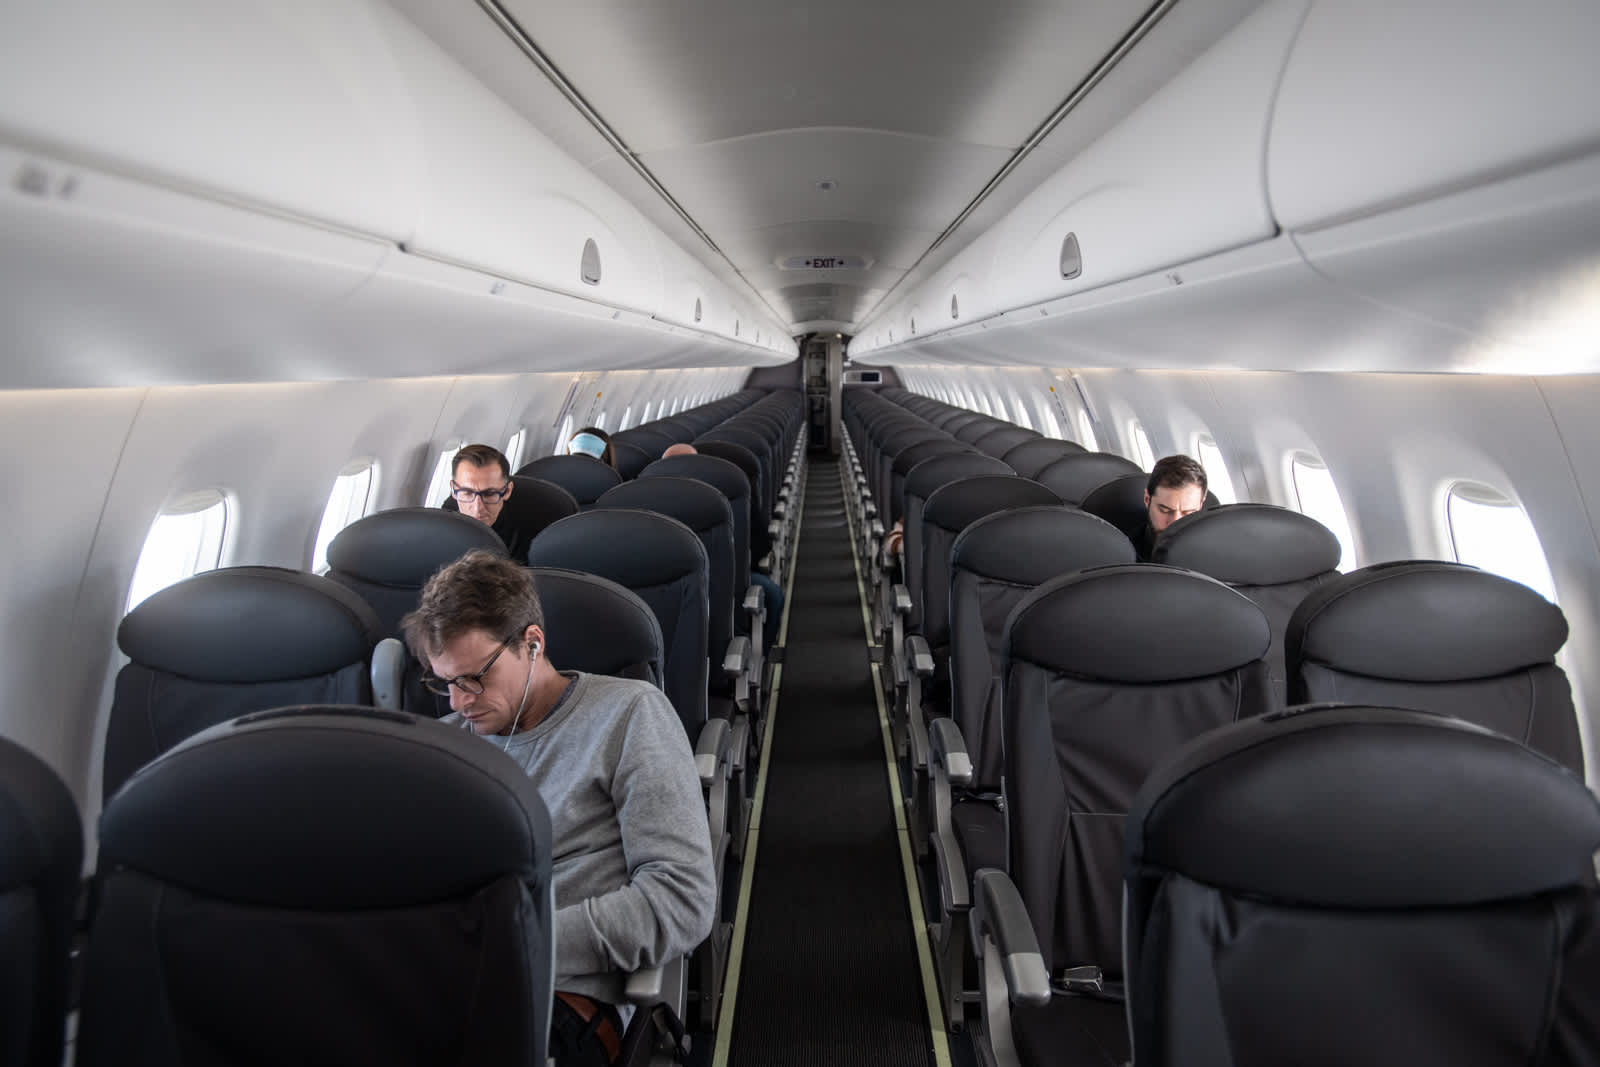 Some airlines are running near-empty ghost flights